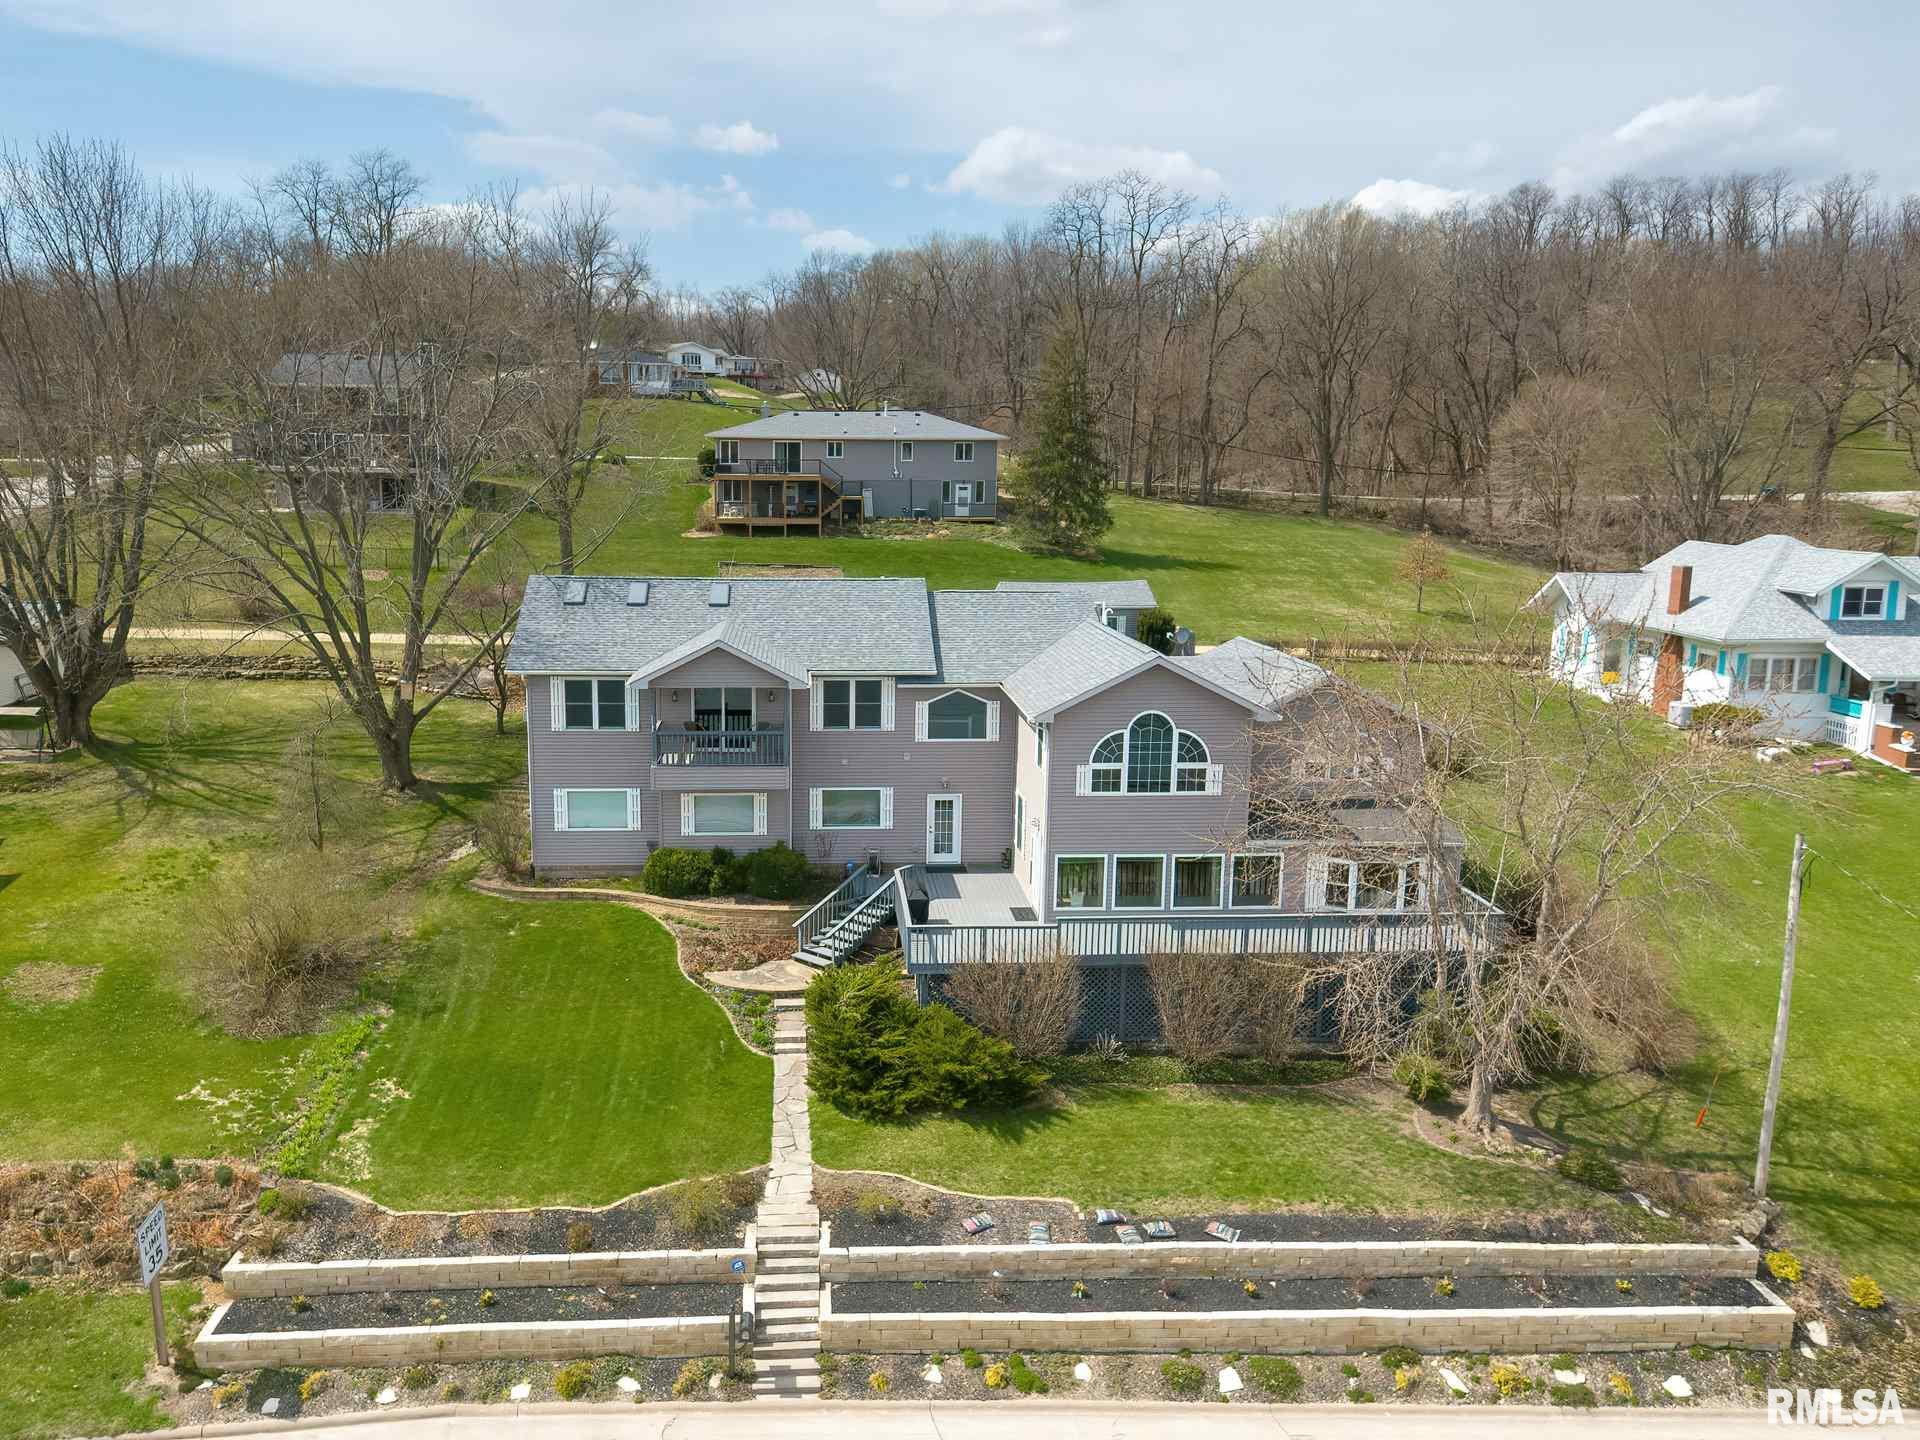 918 N CODY Property Photo - Le Claire, IA real estate listing